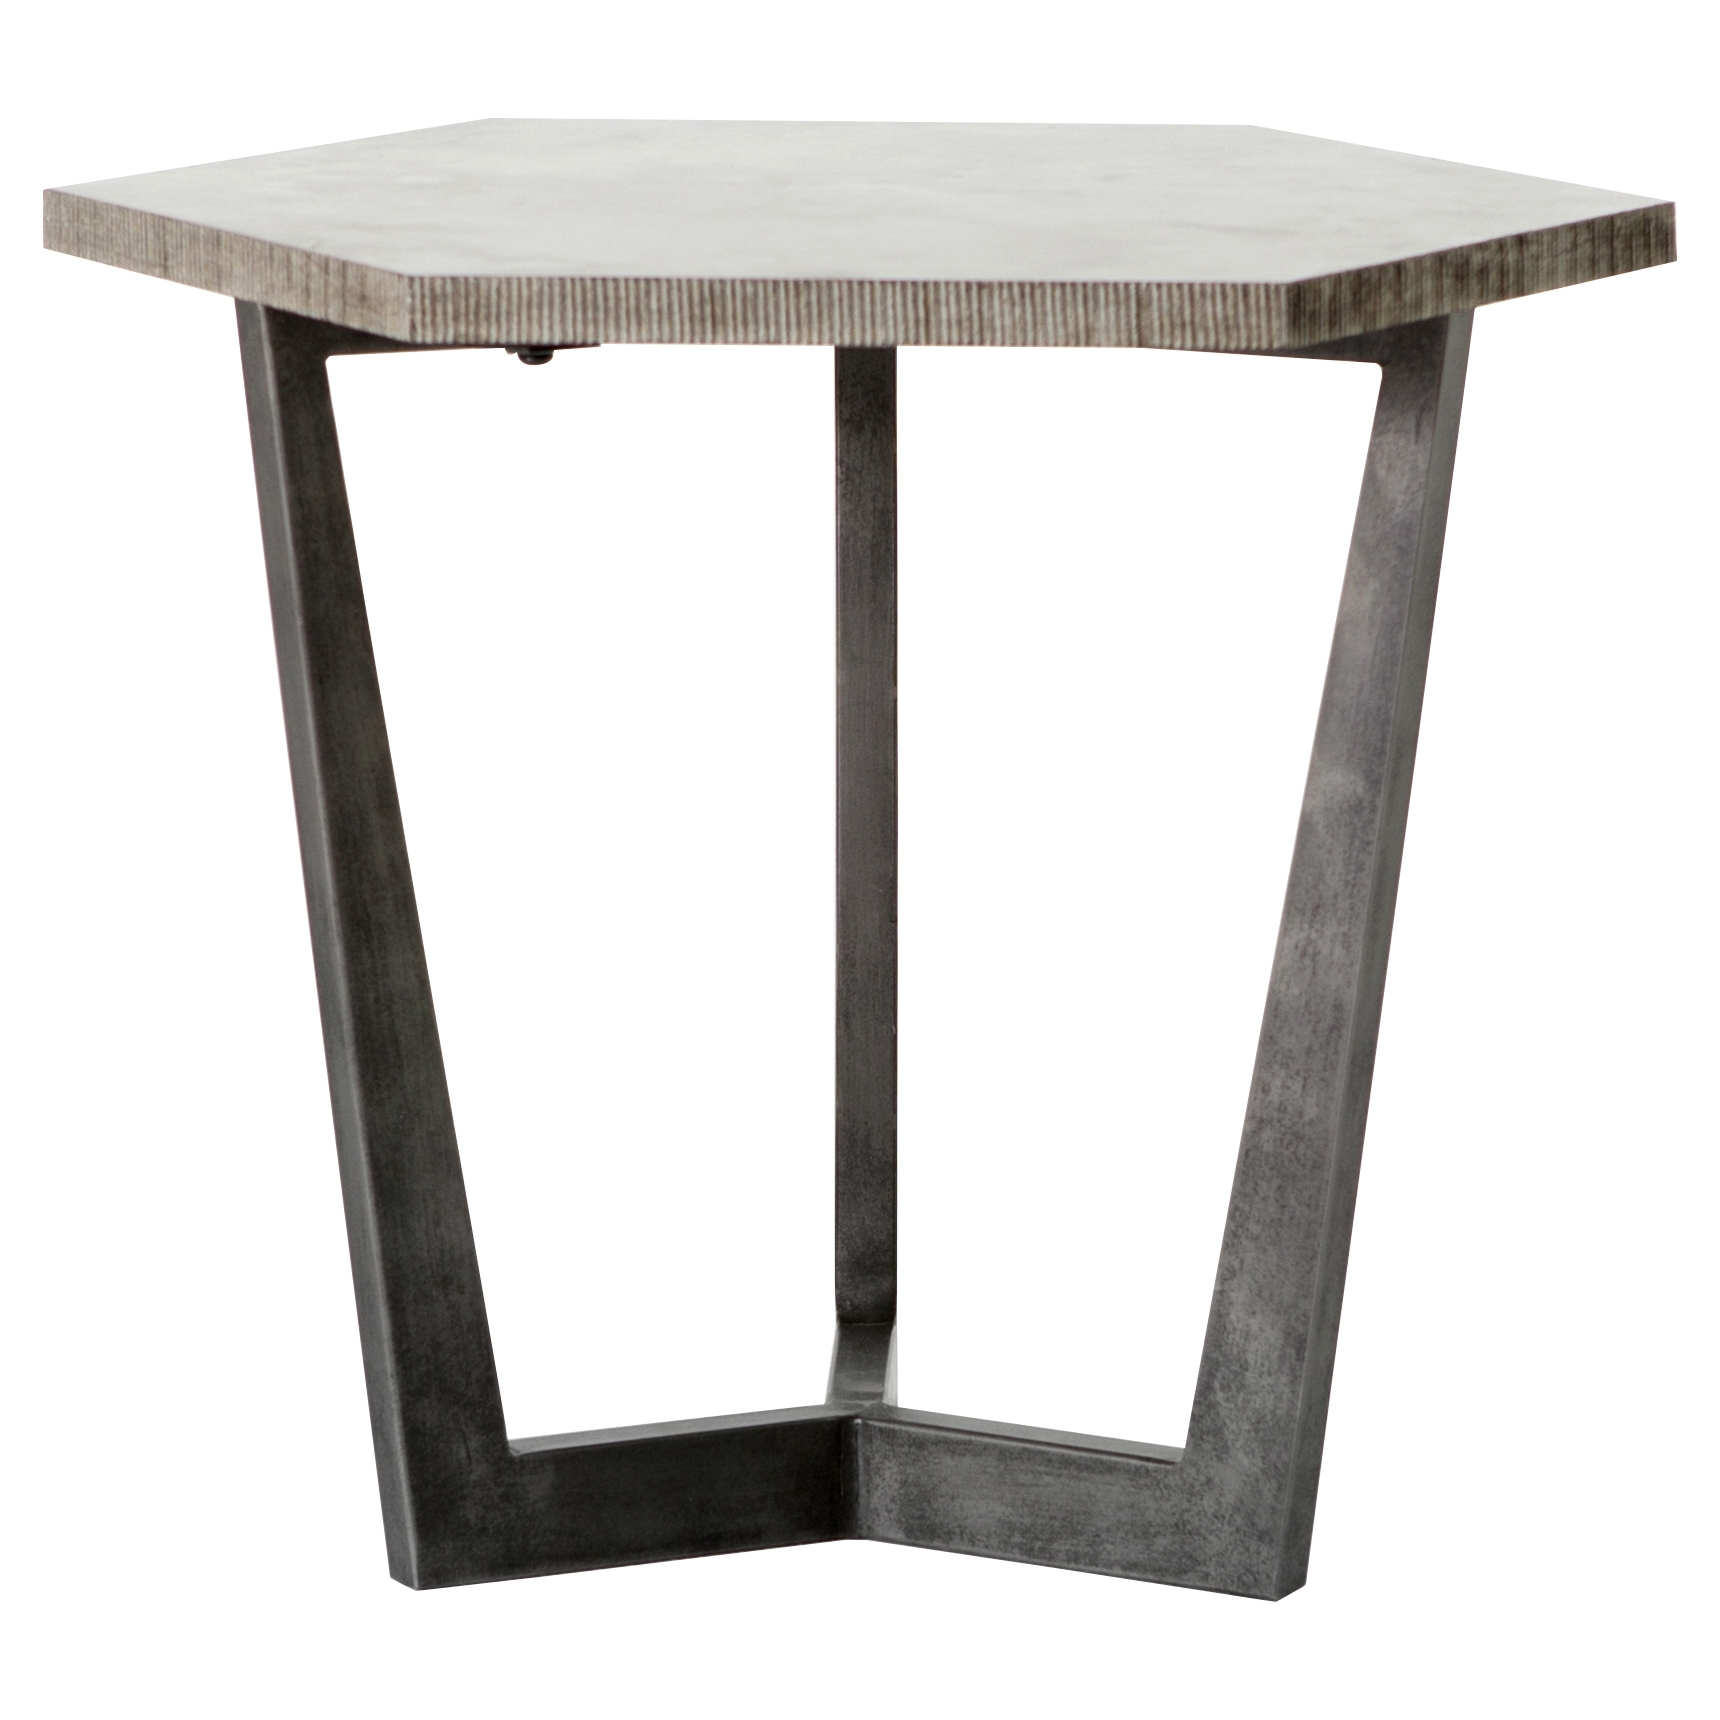 Designer Side & End Tables - Eclectic Side & End Tables | Kathy Kuo Home within Aged Iron Cube Tables (Image 17 of 30)